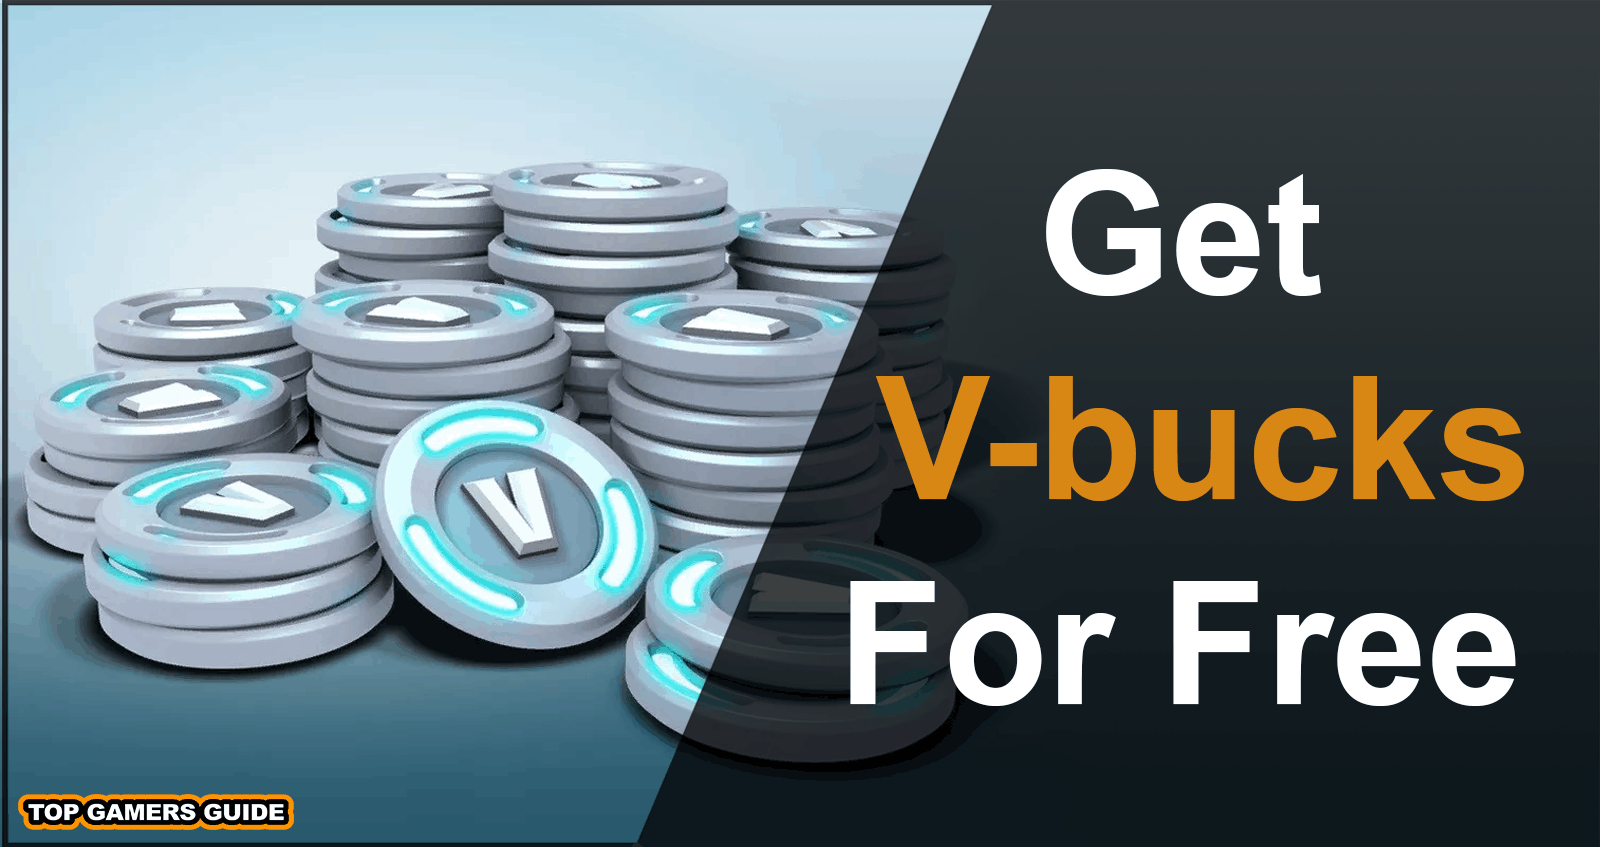 How To Get Free V Bucks Codes In Fortnite 2020 Free V Bucks Codes In 2020 Fortnite Free Gift Card Generator Ps4 Gift Card